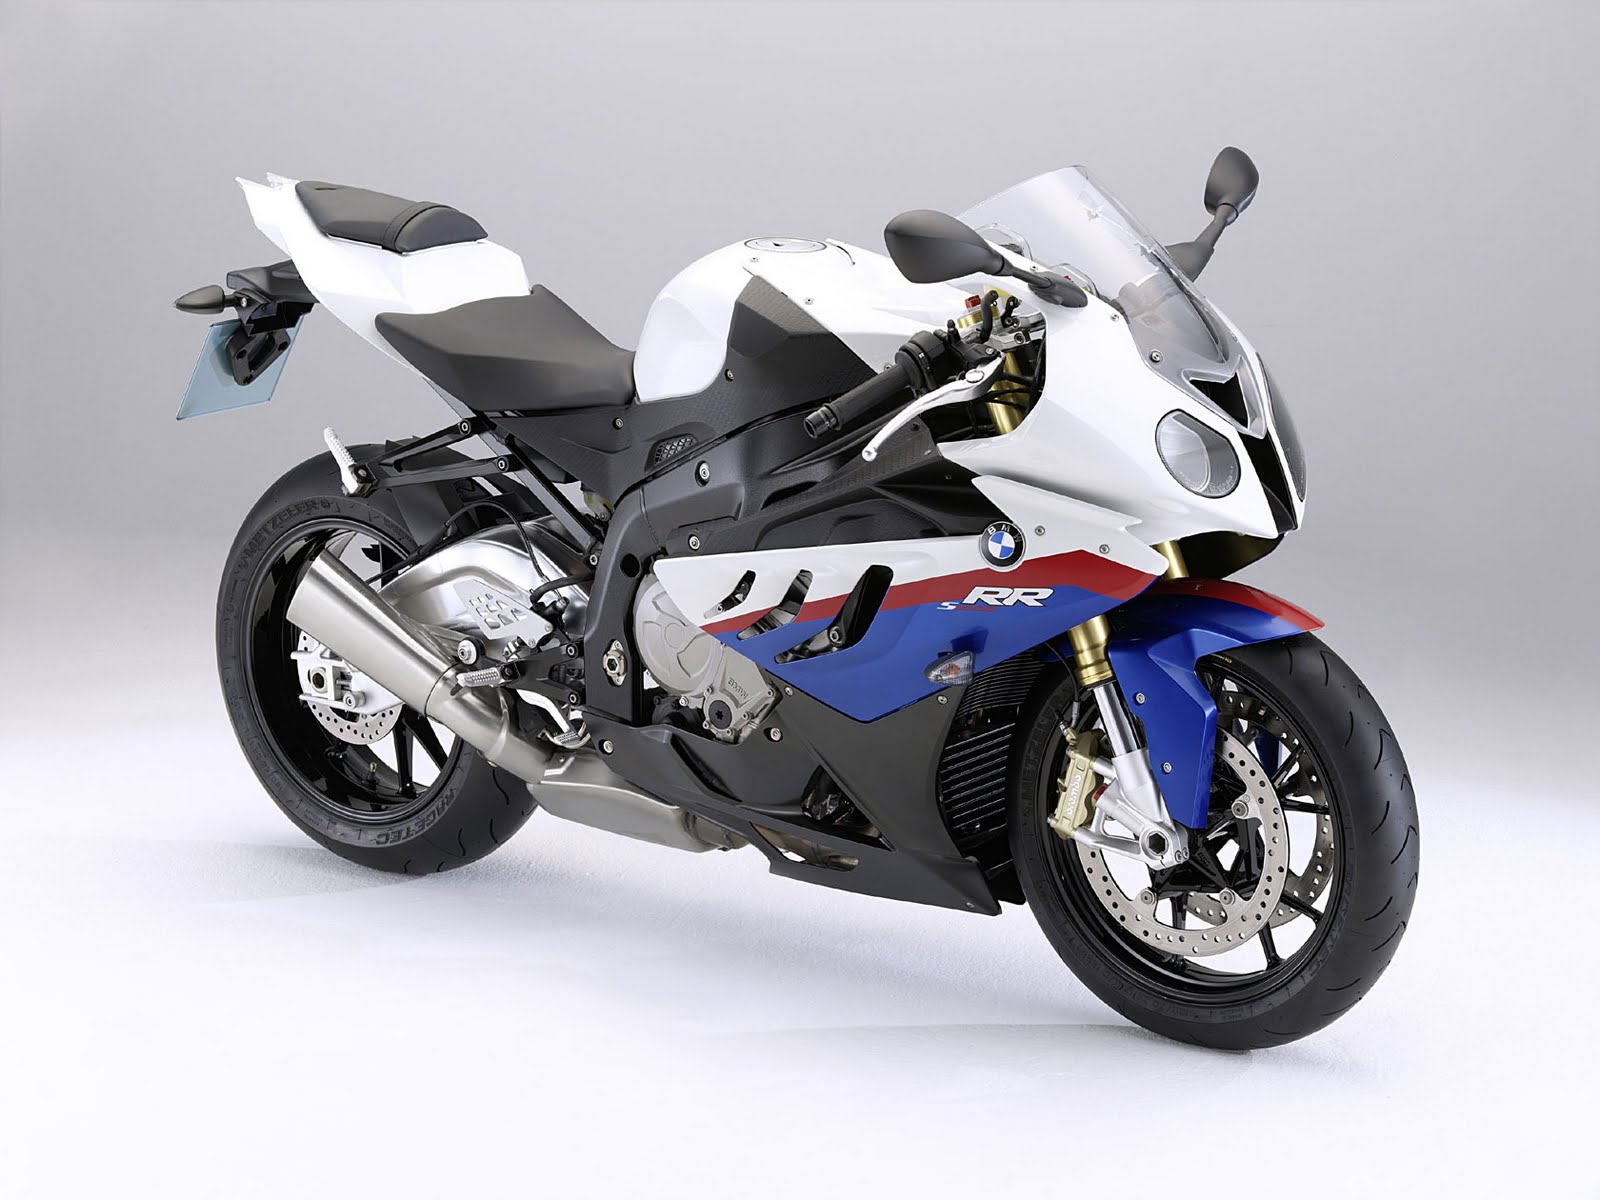 2010 Bmw S1000rr Motorcycle Wallpapers Gallery